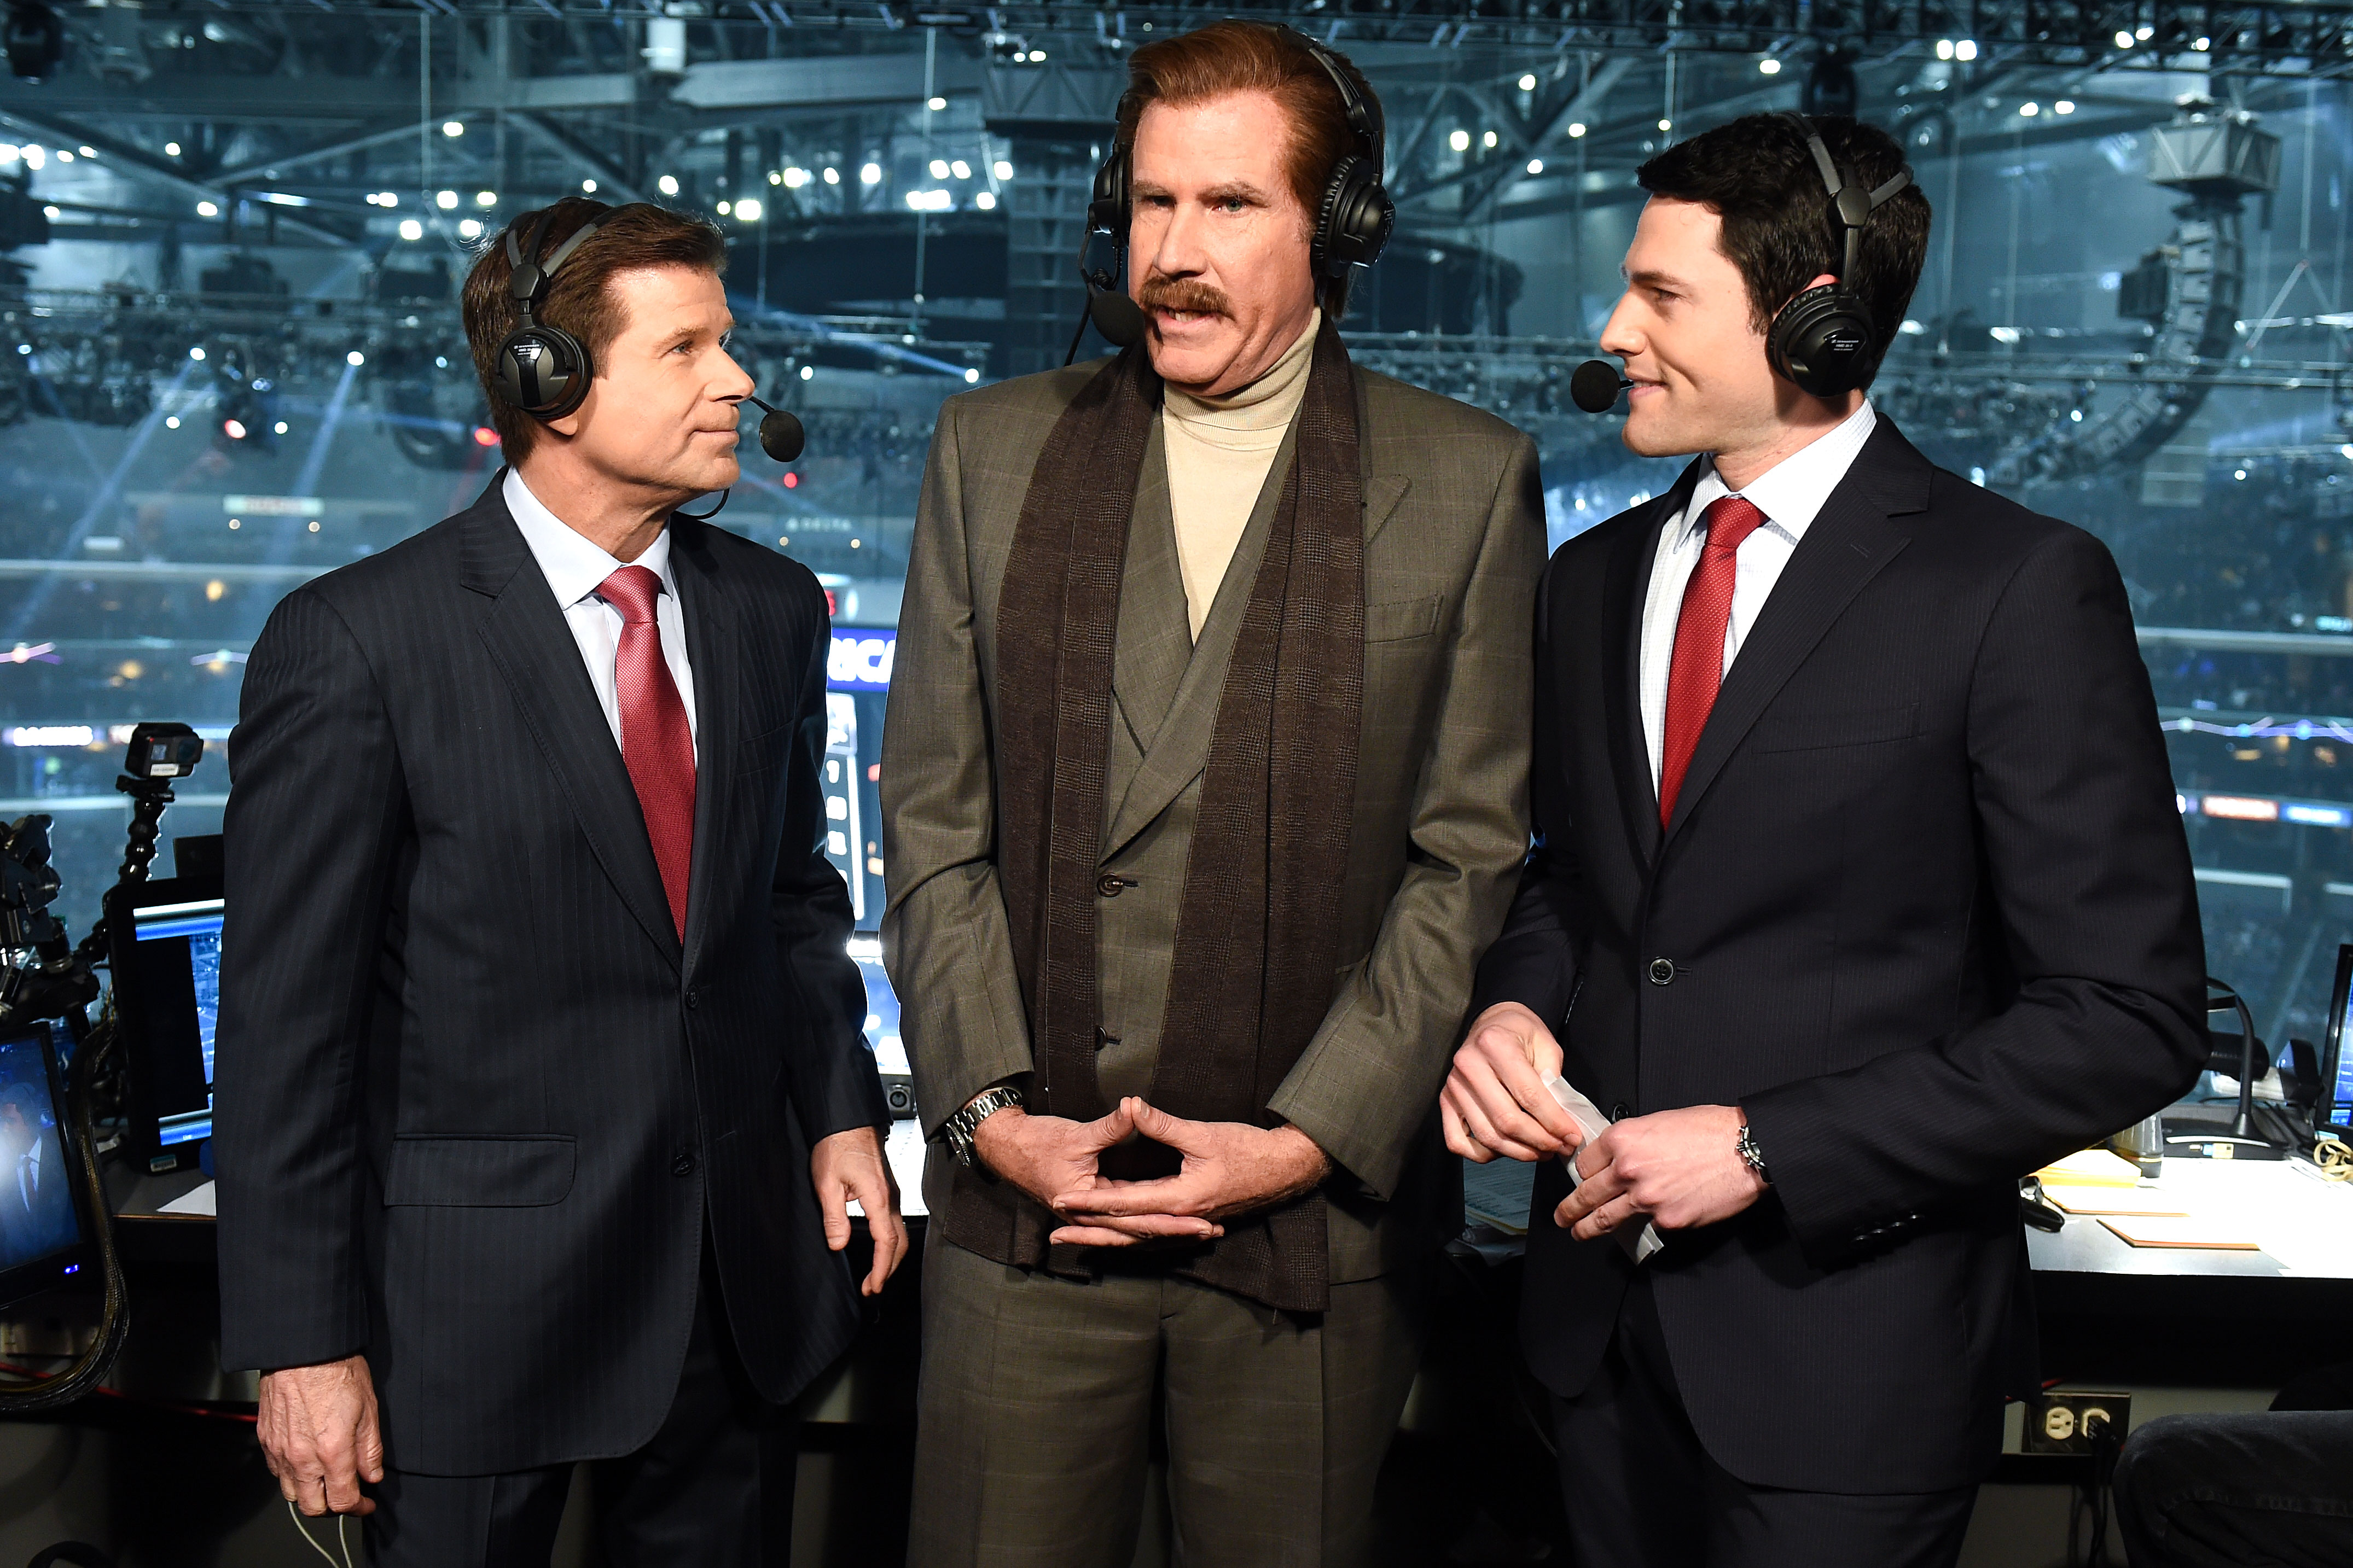 Stay Classy! Will Ferrell Revives Anchorman's Ron Burgundy Hockey Game - Will Ferrell, in character as Ron Burgundy, talks with Fox Sports West broadcasters Jim Fox, and Alex Faust, at the game between the San Jose Sharks vs. the Los Angeles Kings on March 21, 2019 in Los Angeles, California.